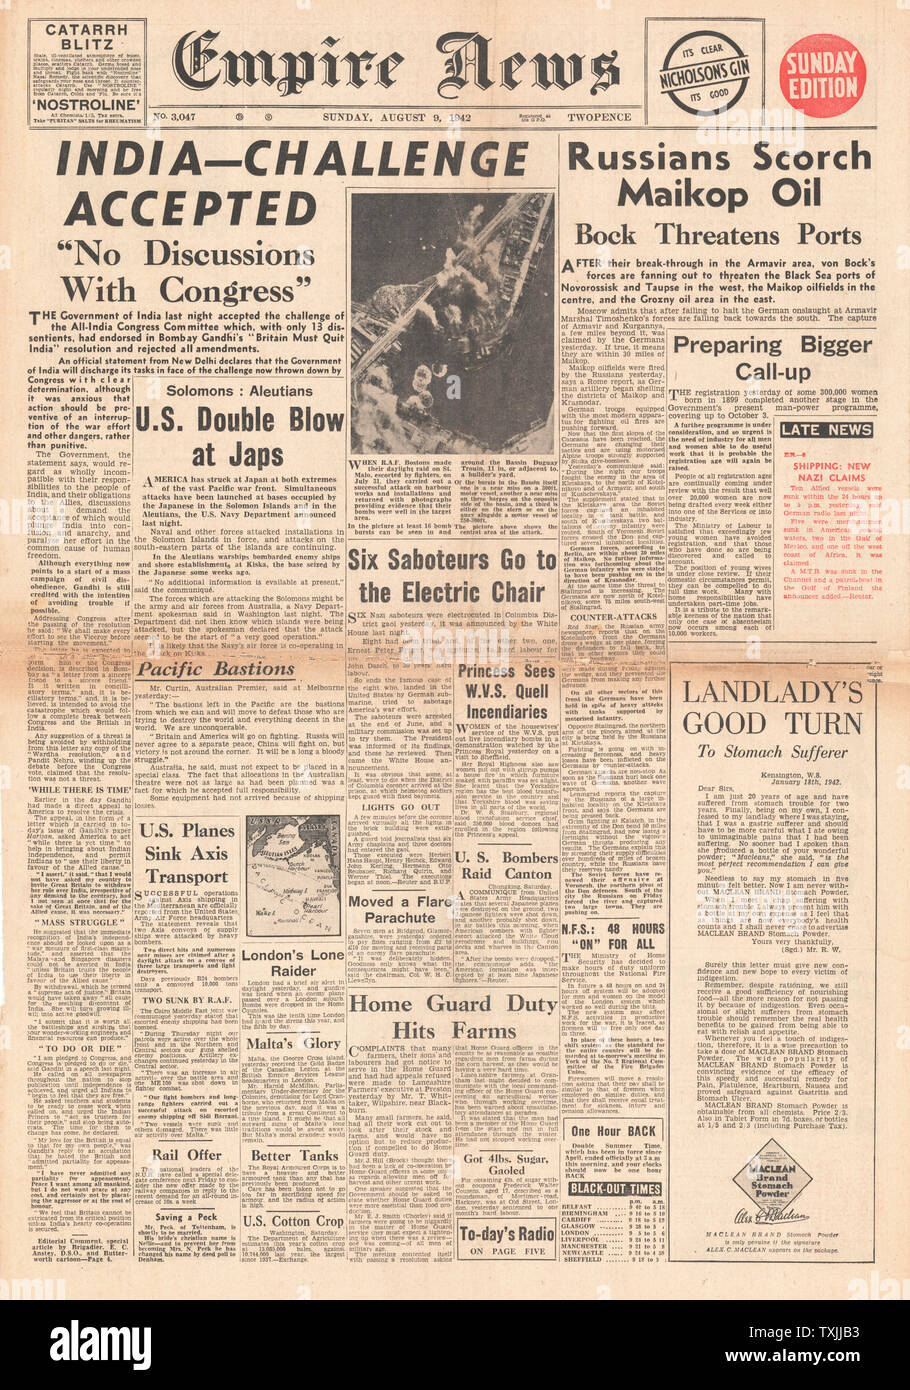 1942 front page Empire News Indian Congress endorse Gandhi's